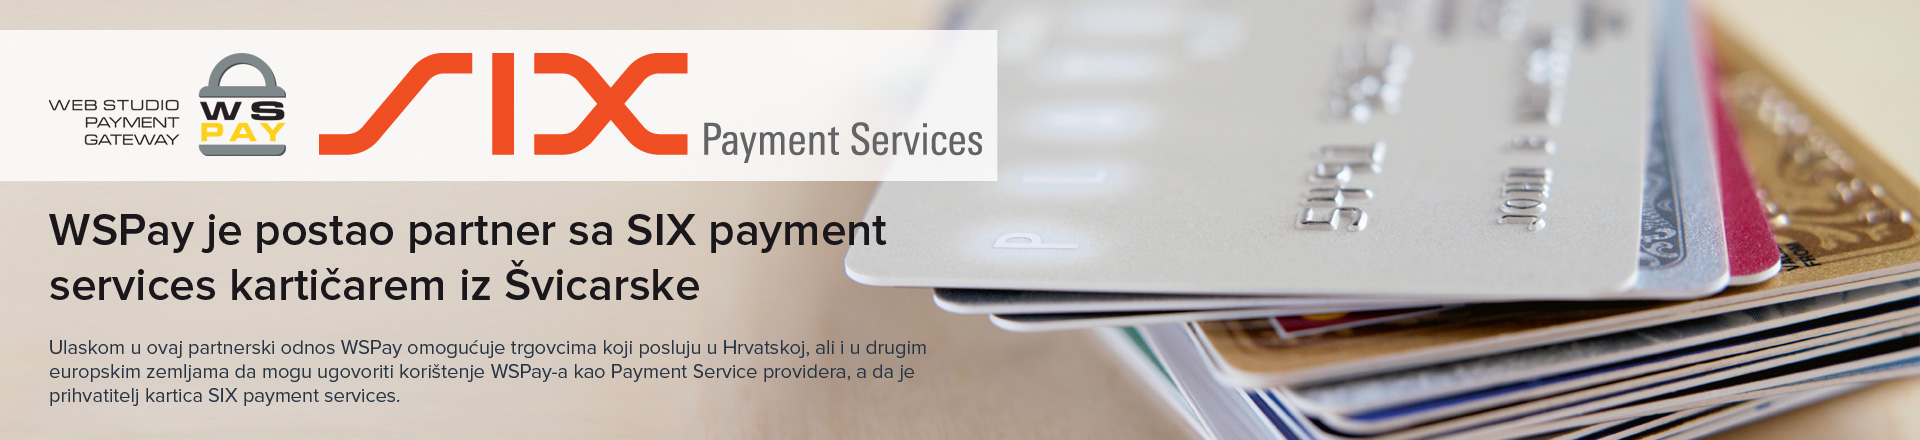 https://www.wspay.info/Repository/Banners/WSPay-SIX-payment-services-1920x440.jpg